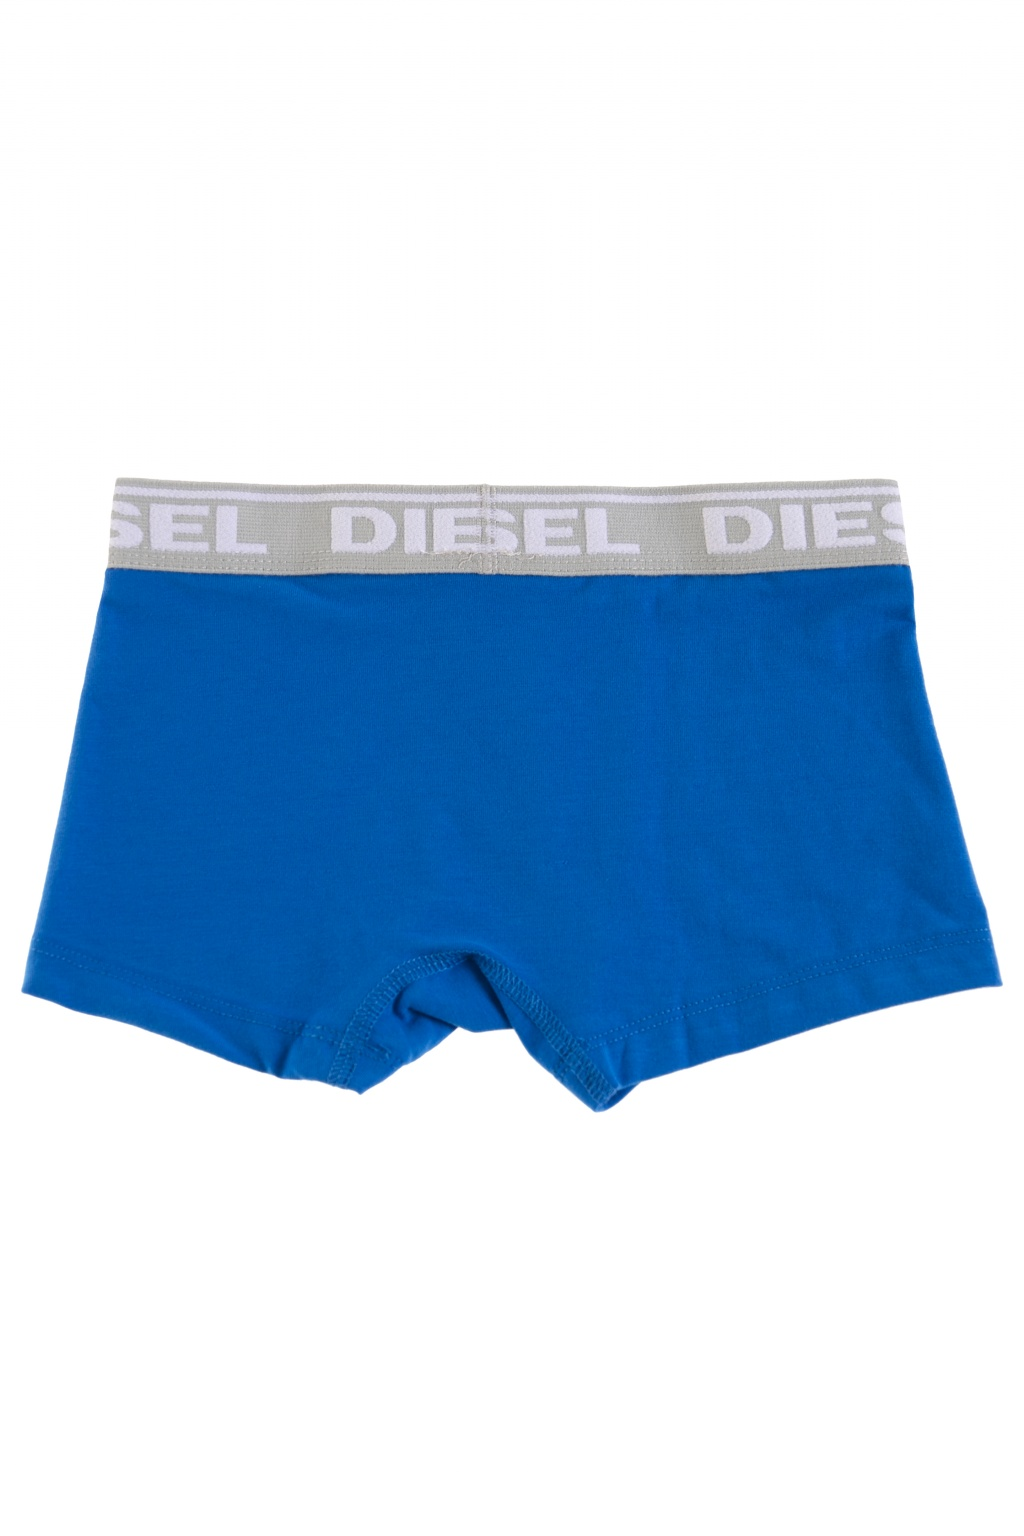 Diesel Kids Cotton Boxers